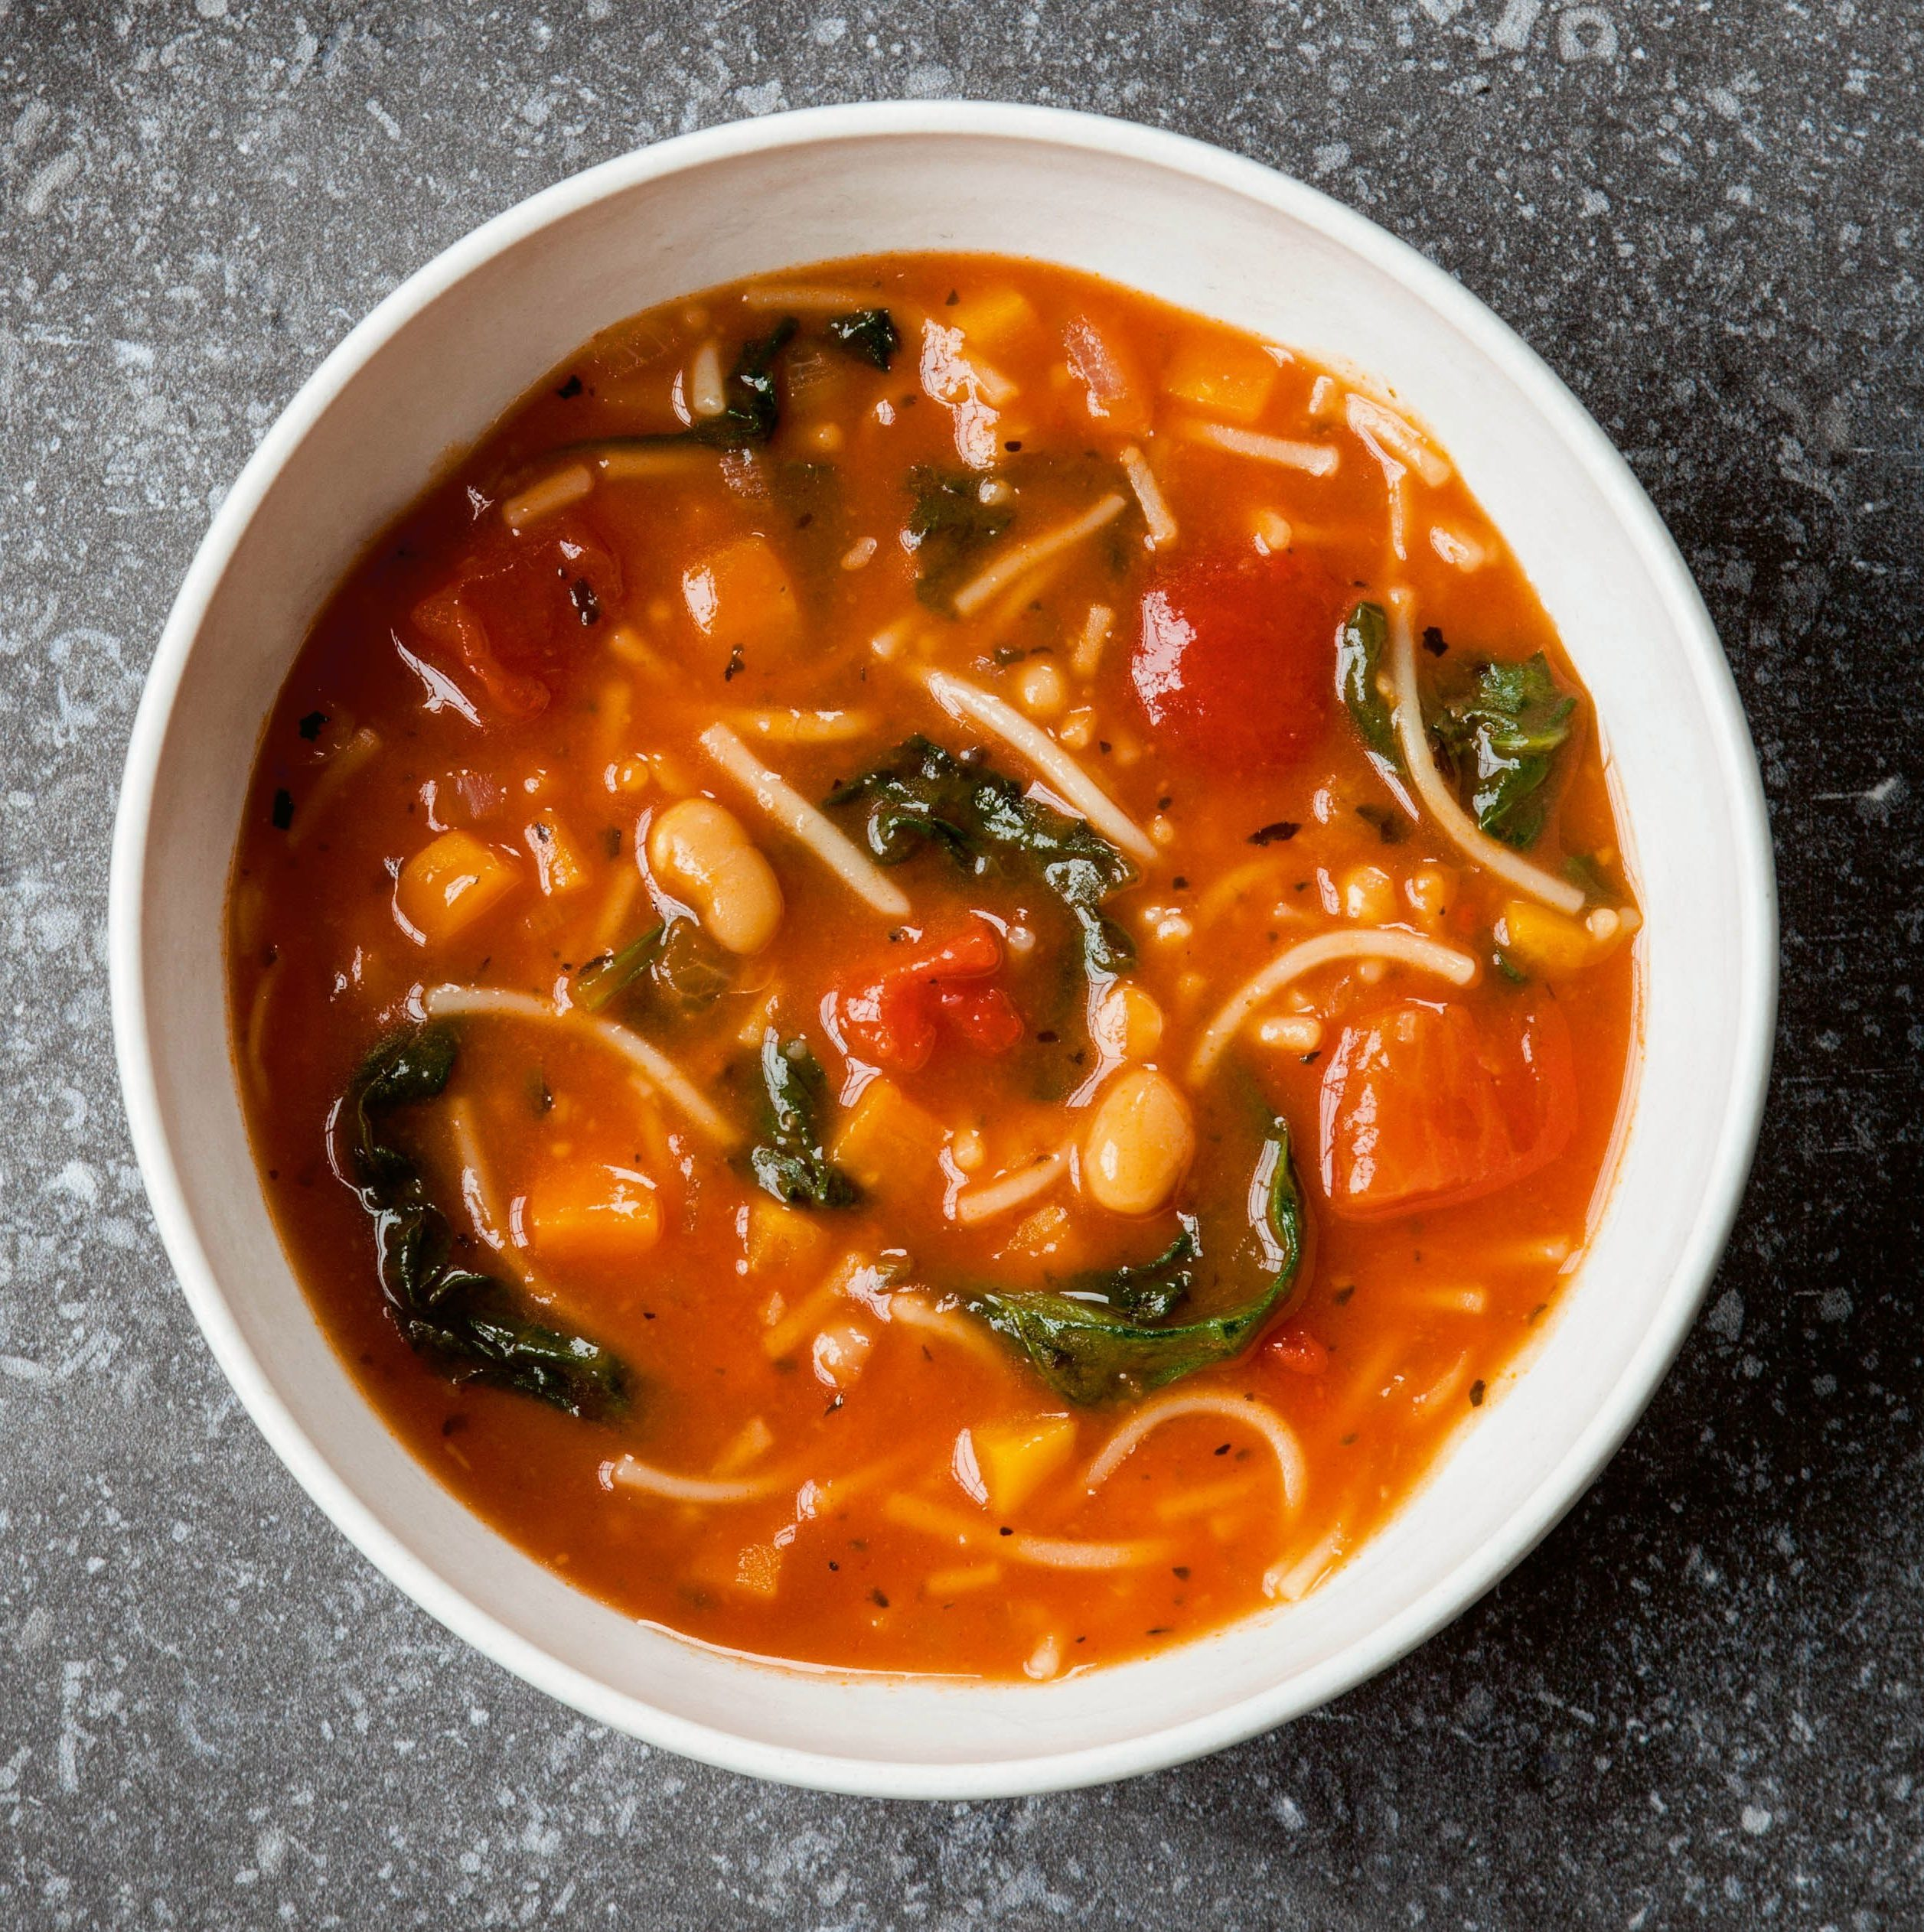 To better enjoy your Minestrone have it with part-baked bread